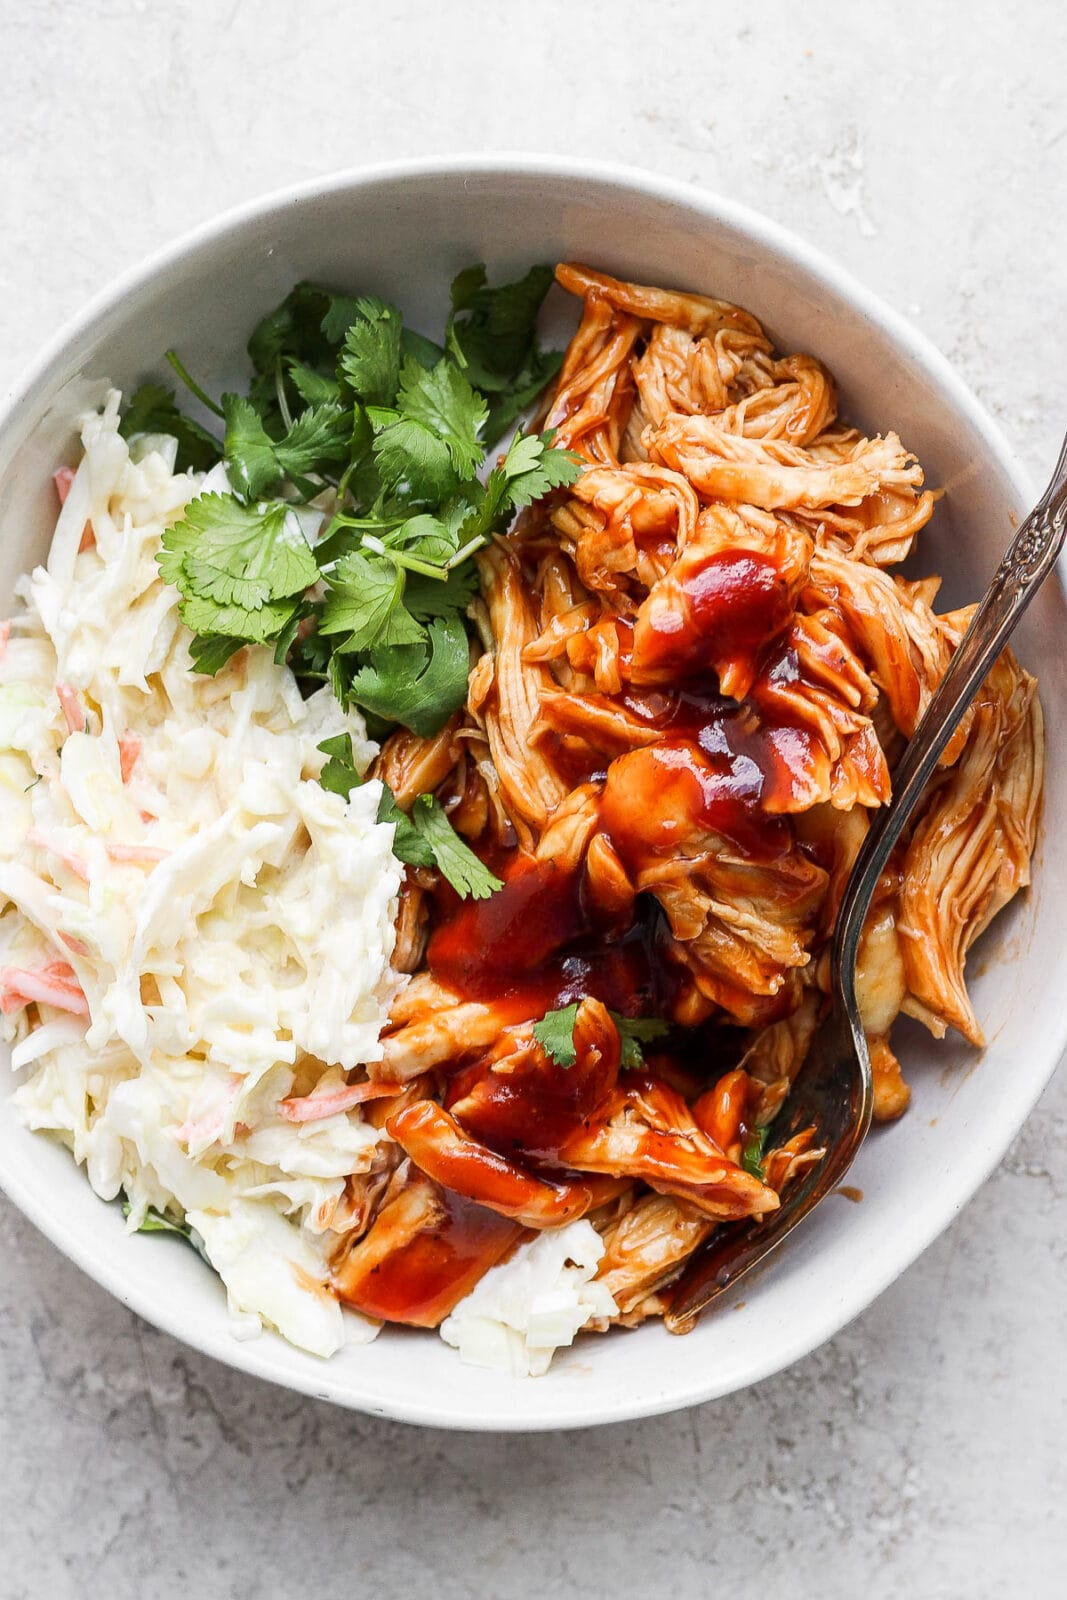 Crockpot BBQ chicken in a bowl with coleslaw and cilantro.